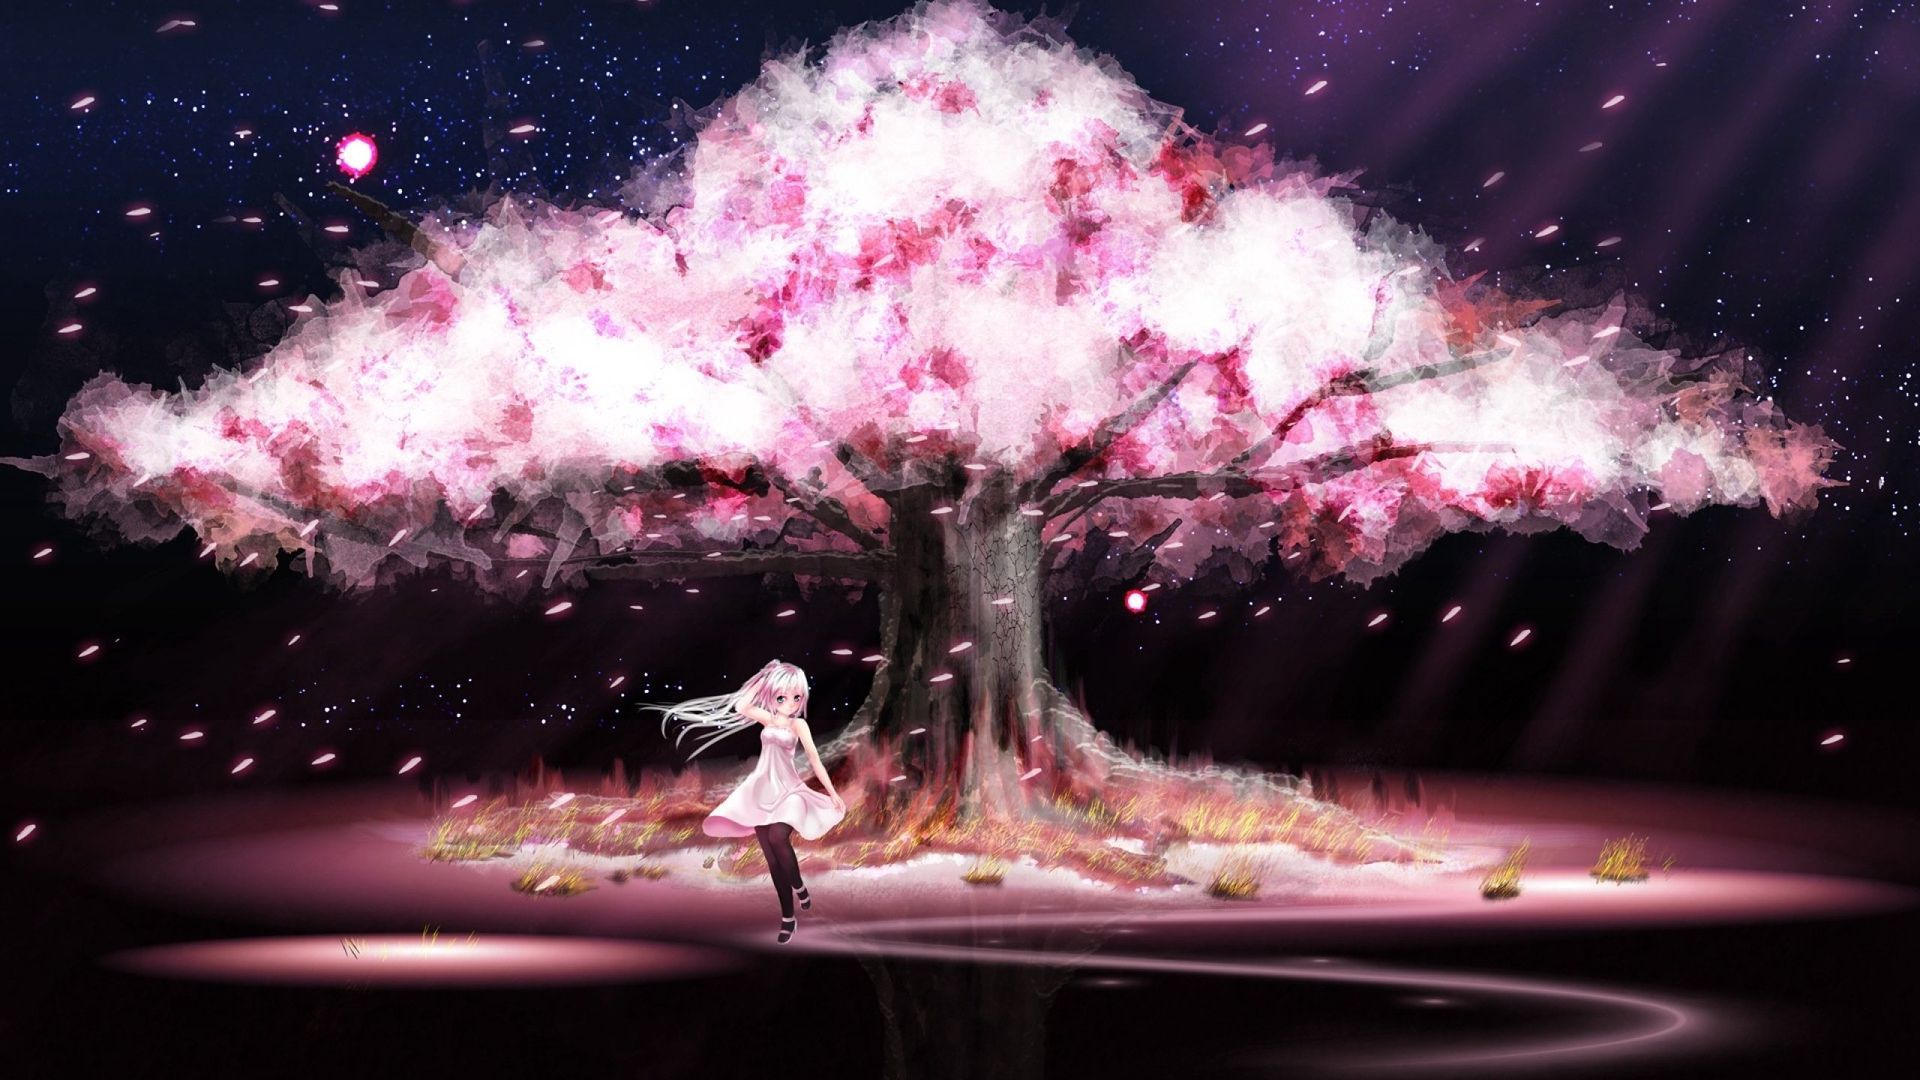 Diabolik Lovers One Shots Requests Closed Cherry Blossom Wallpaper Anime Cherry Blossom Anime Scenery